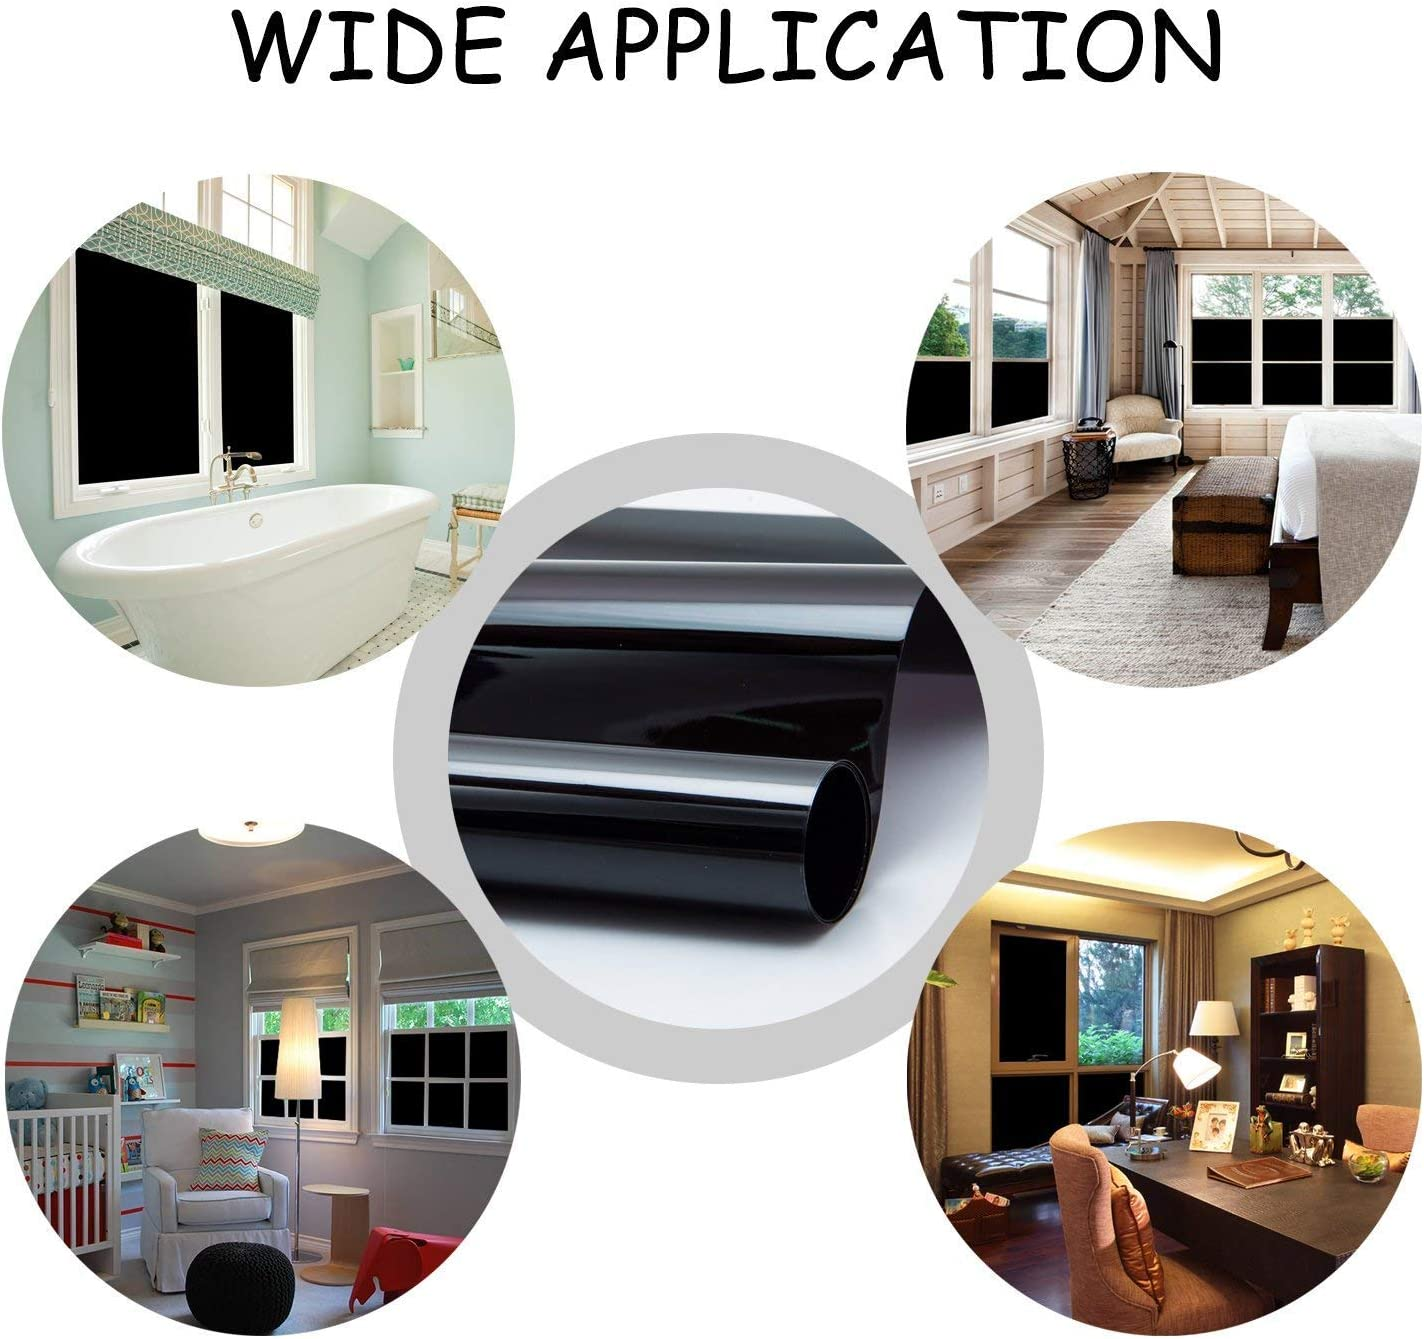 Do4U Blackout Window Film Blackout Blinds Stick On Static Cling Tint for 24 Hours Window Privacy 44.5 * 100cm, Black Room Darkening Window Treatment for Nap Time,Night Working,Baby Room No Glue